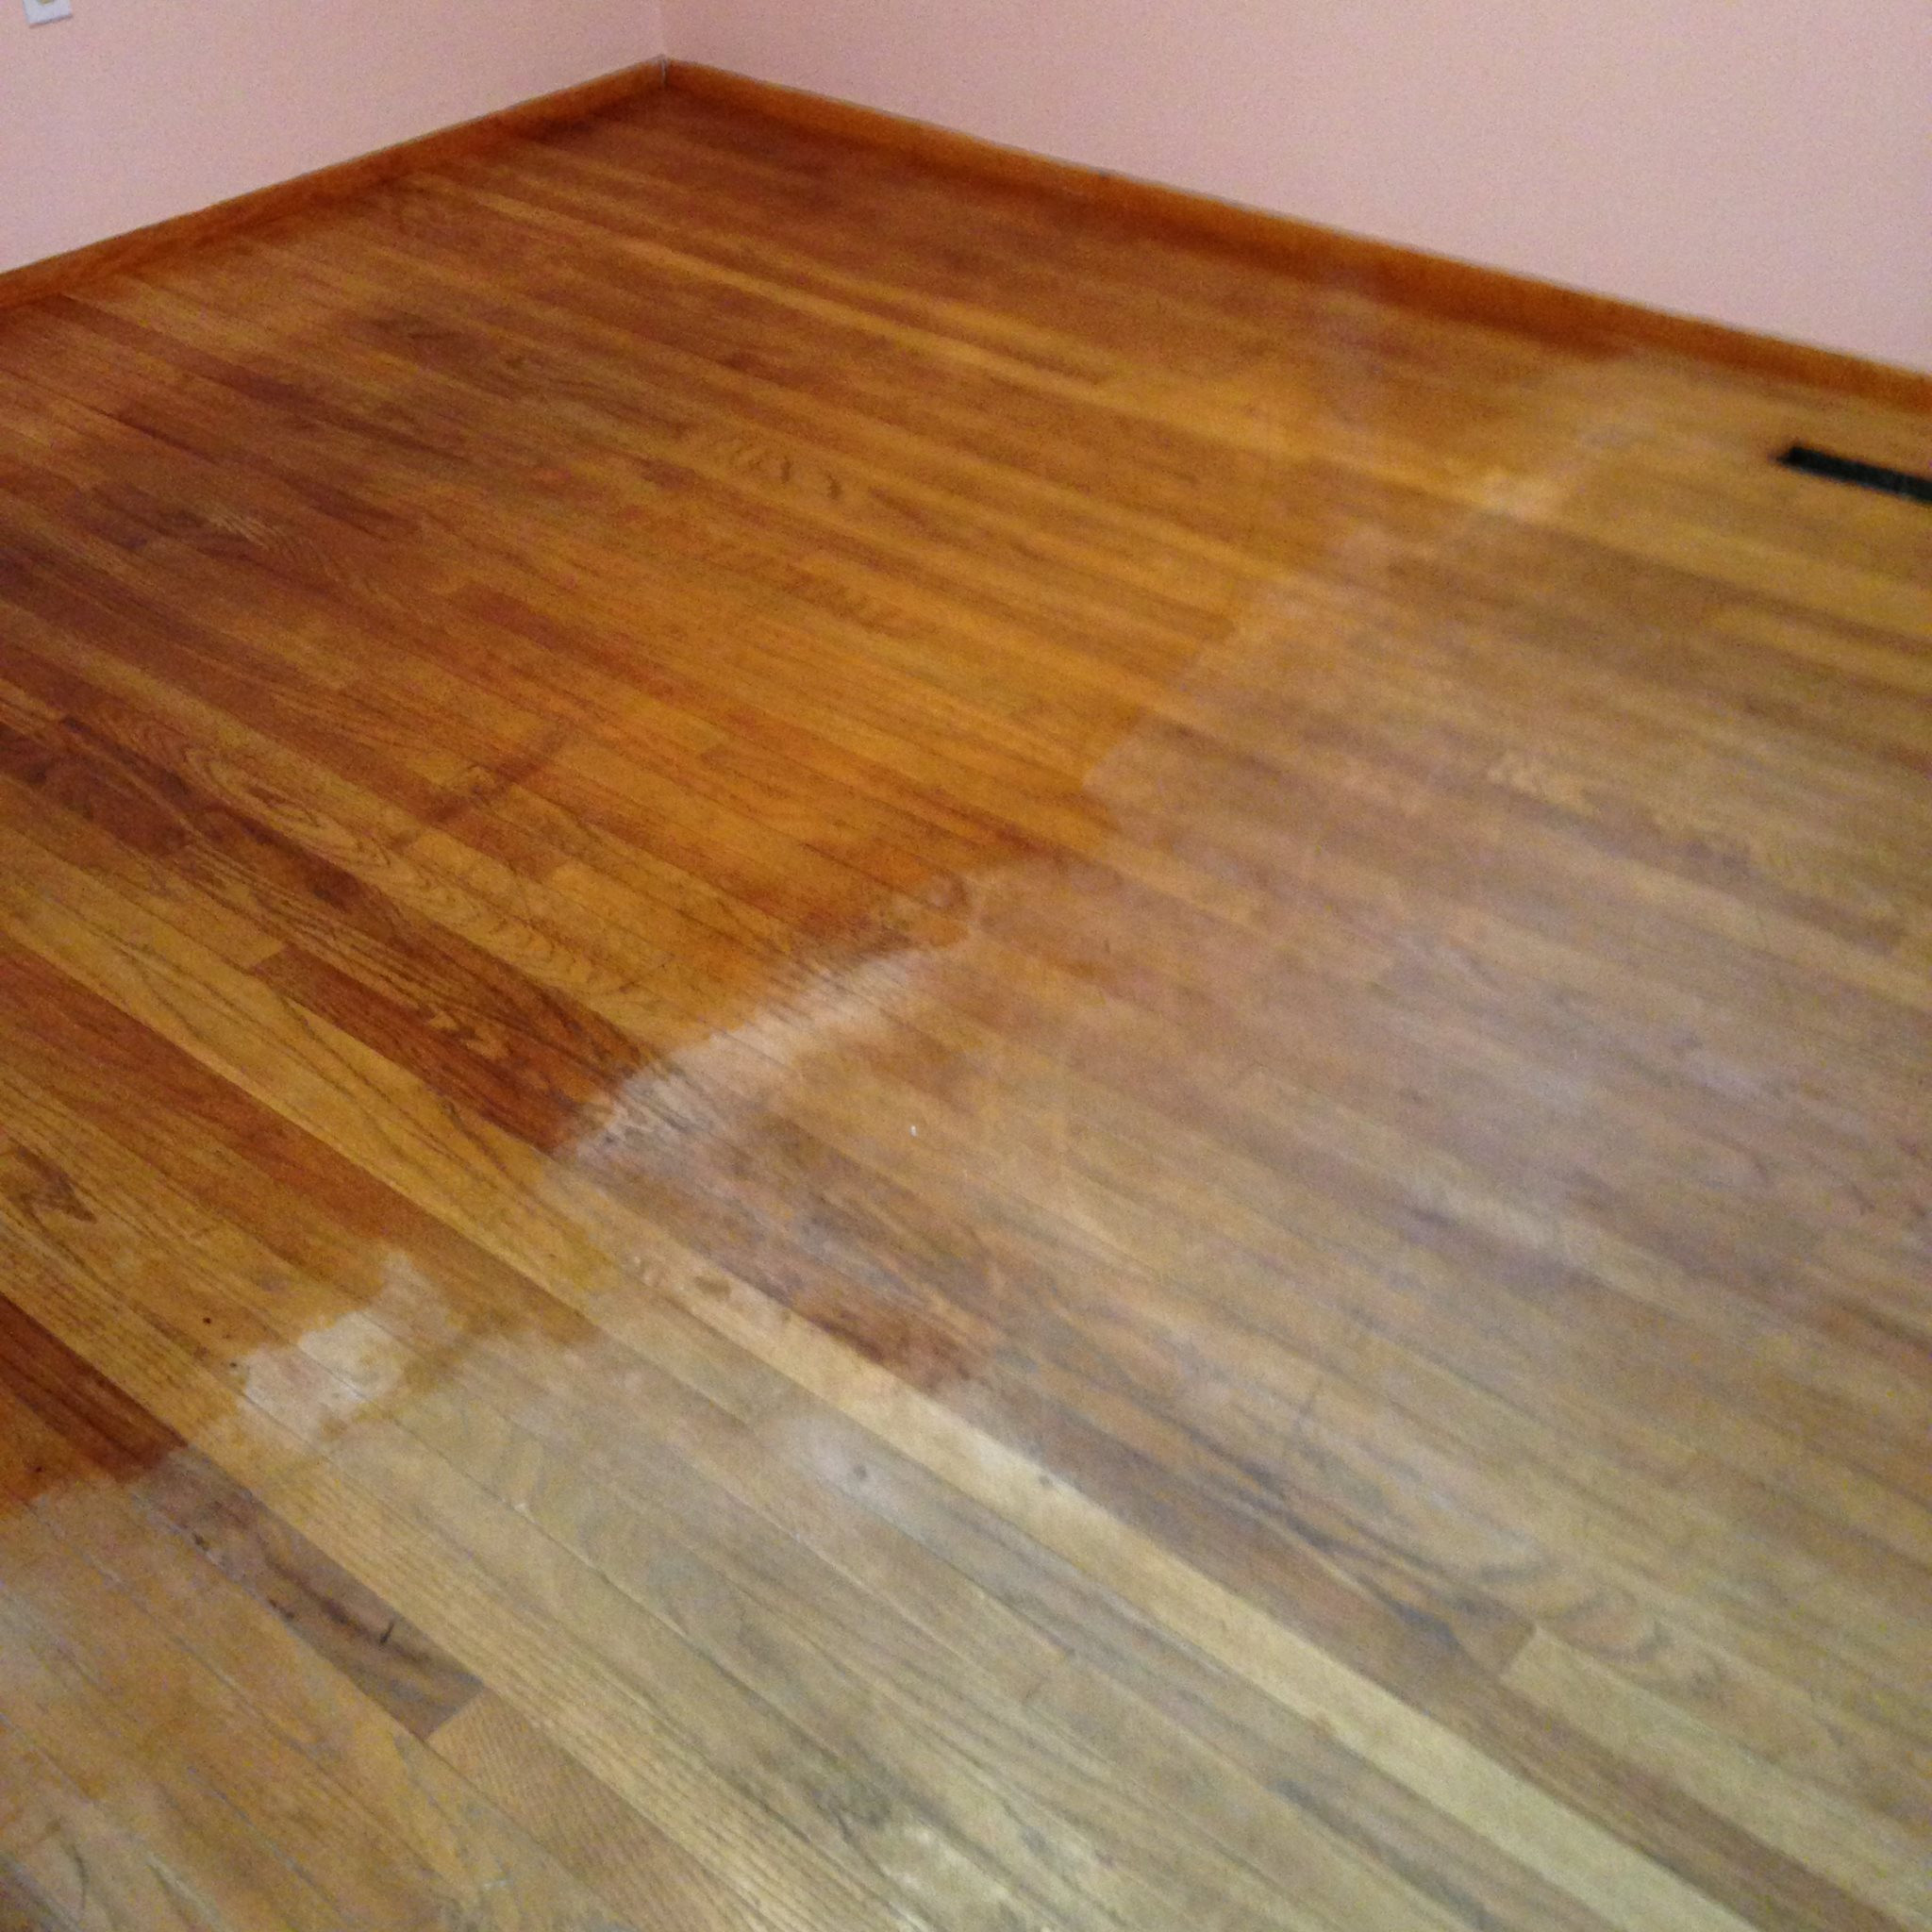 Hardwood Floor Cleaner and Restorer Of 15 Wood Floor Hacks Every Homeowner Needs to Know Regarding Wood Floor Hacks 15